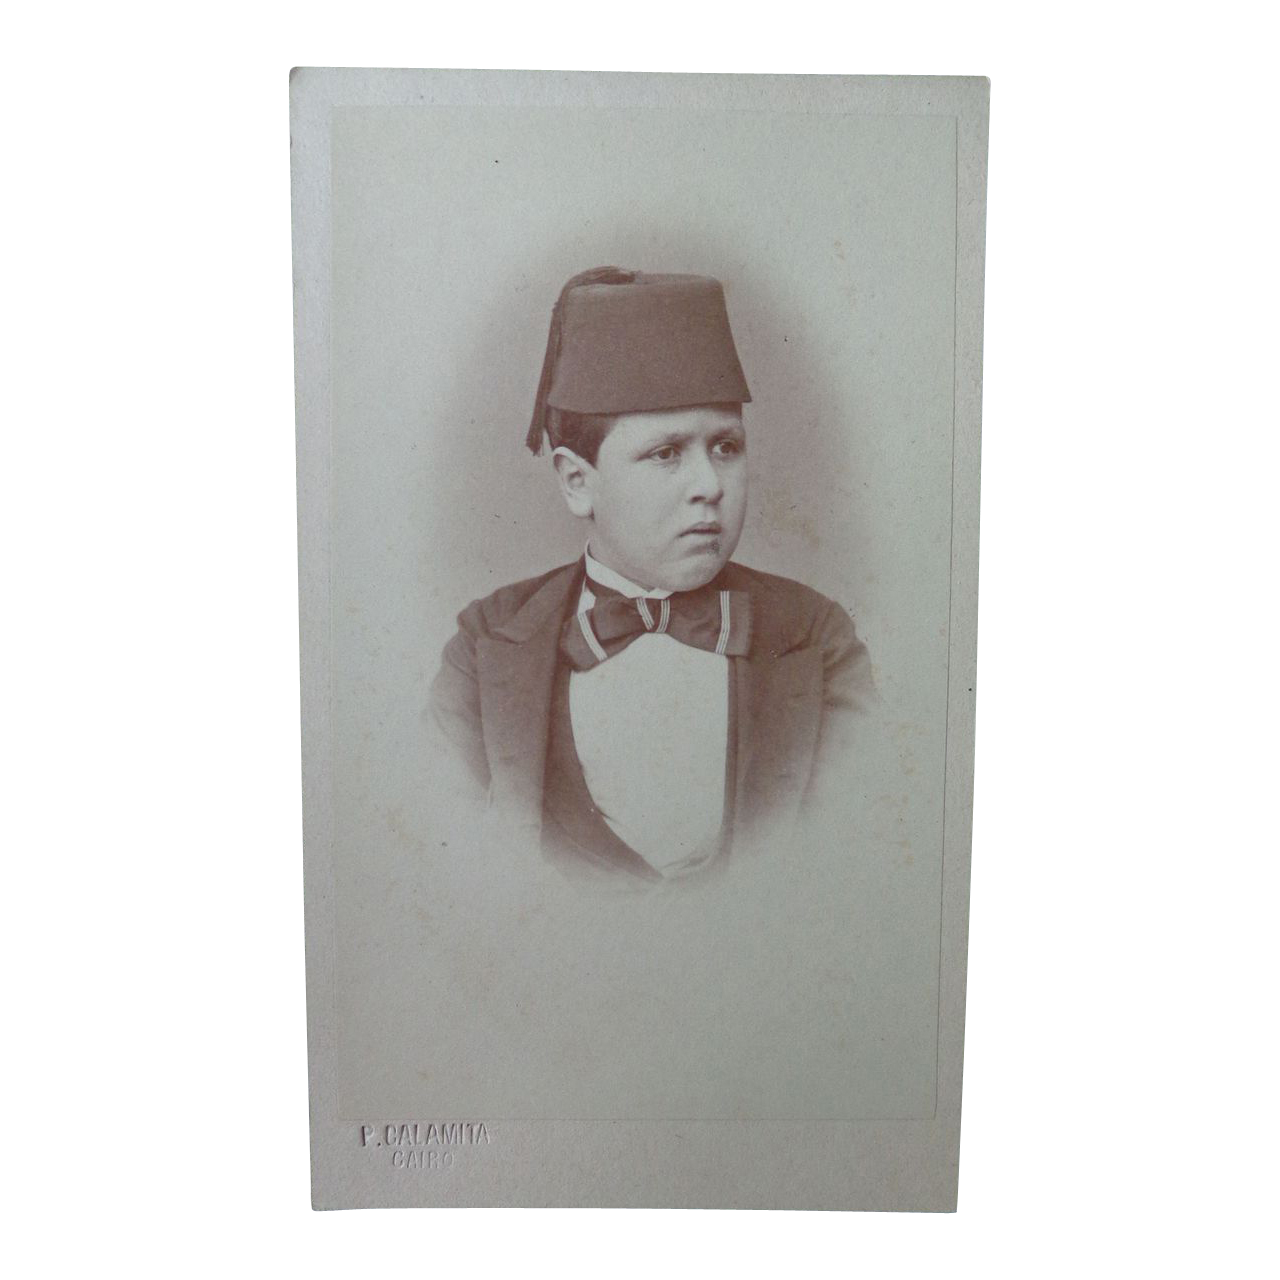 Rare CDV Photograph of Ibrahim Pasha Youngest Son Egypt by Calamita of Cario